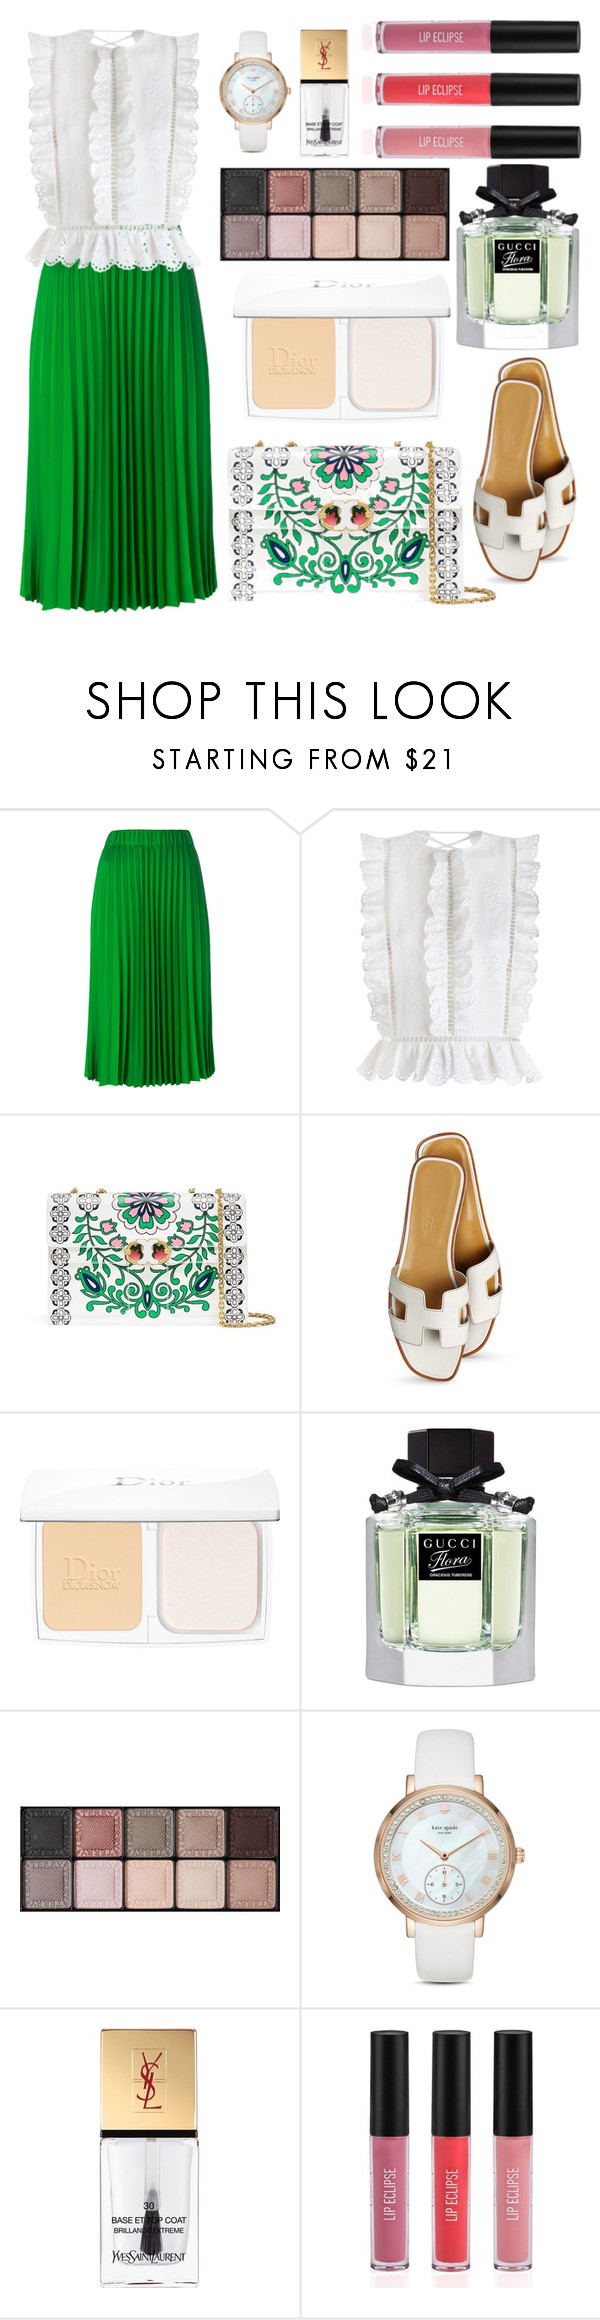 """""""Untitled #469"""" by ngkhhuynstyle ❤ liked on Polyvore featuring P.A.R.O.S.H., Zimmermann, Tory Burch, Hermès, Christian Dior, Gucci, By Terry, Kate Spade, Yves Saint Laurent and Sigma"""